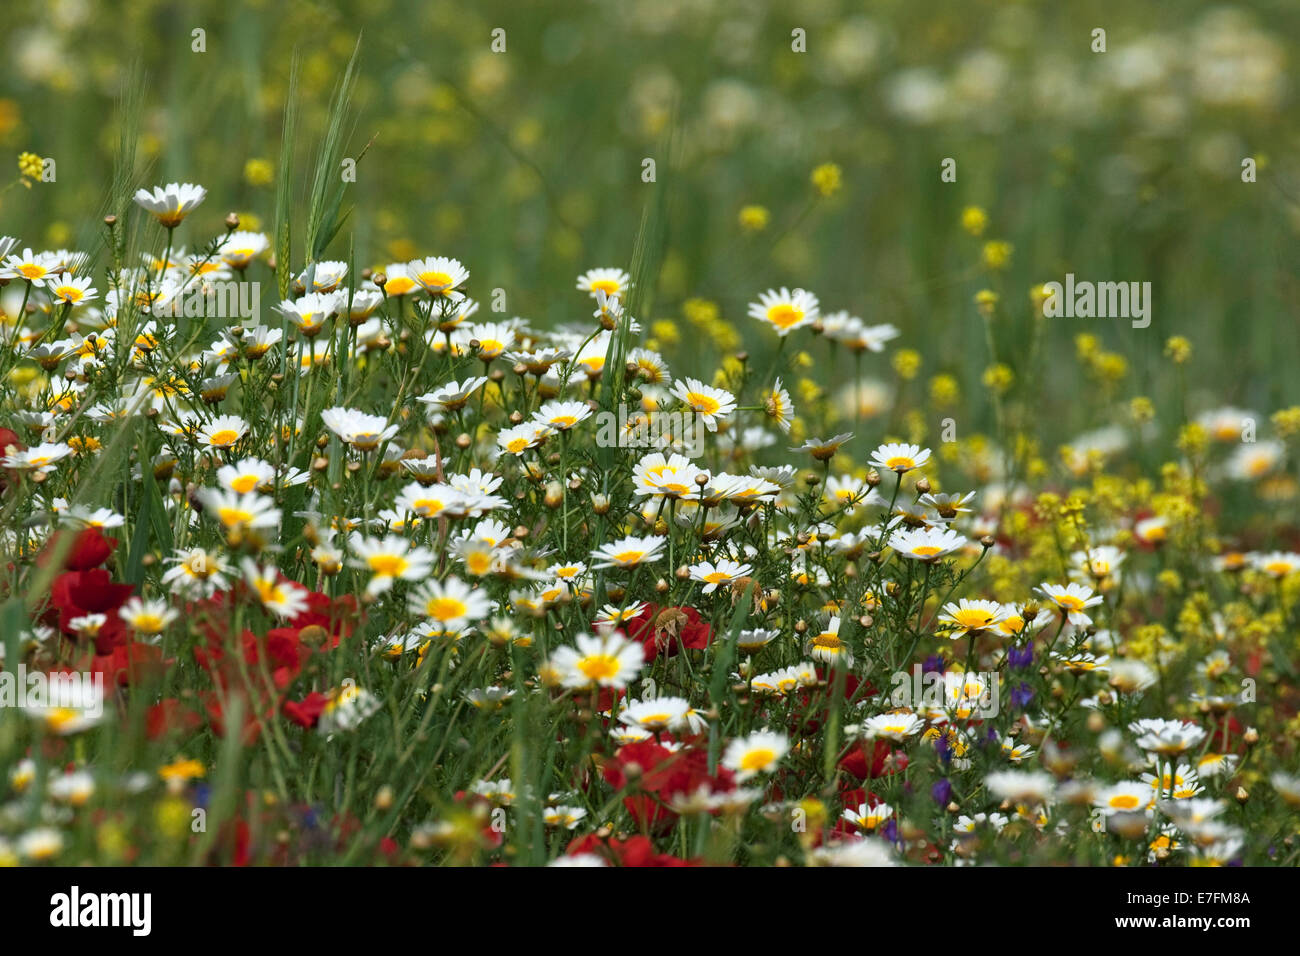 Colourful wildflowers, herbs and weeds flowering in field in spring - Stock Image